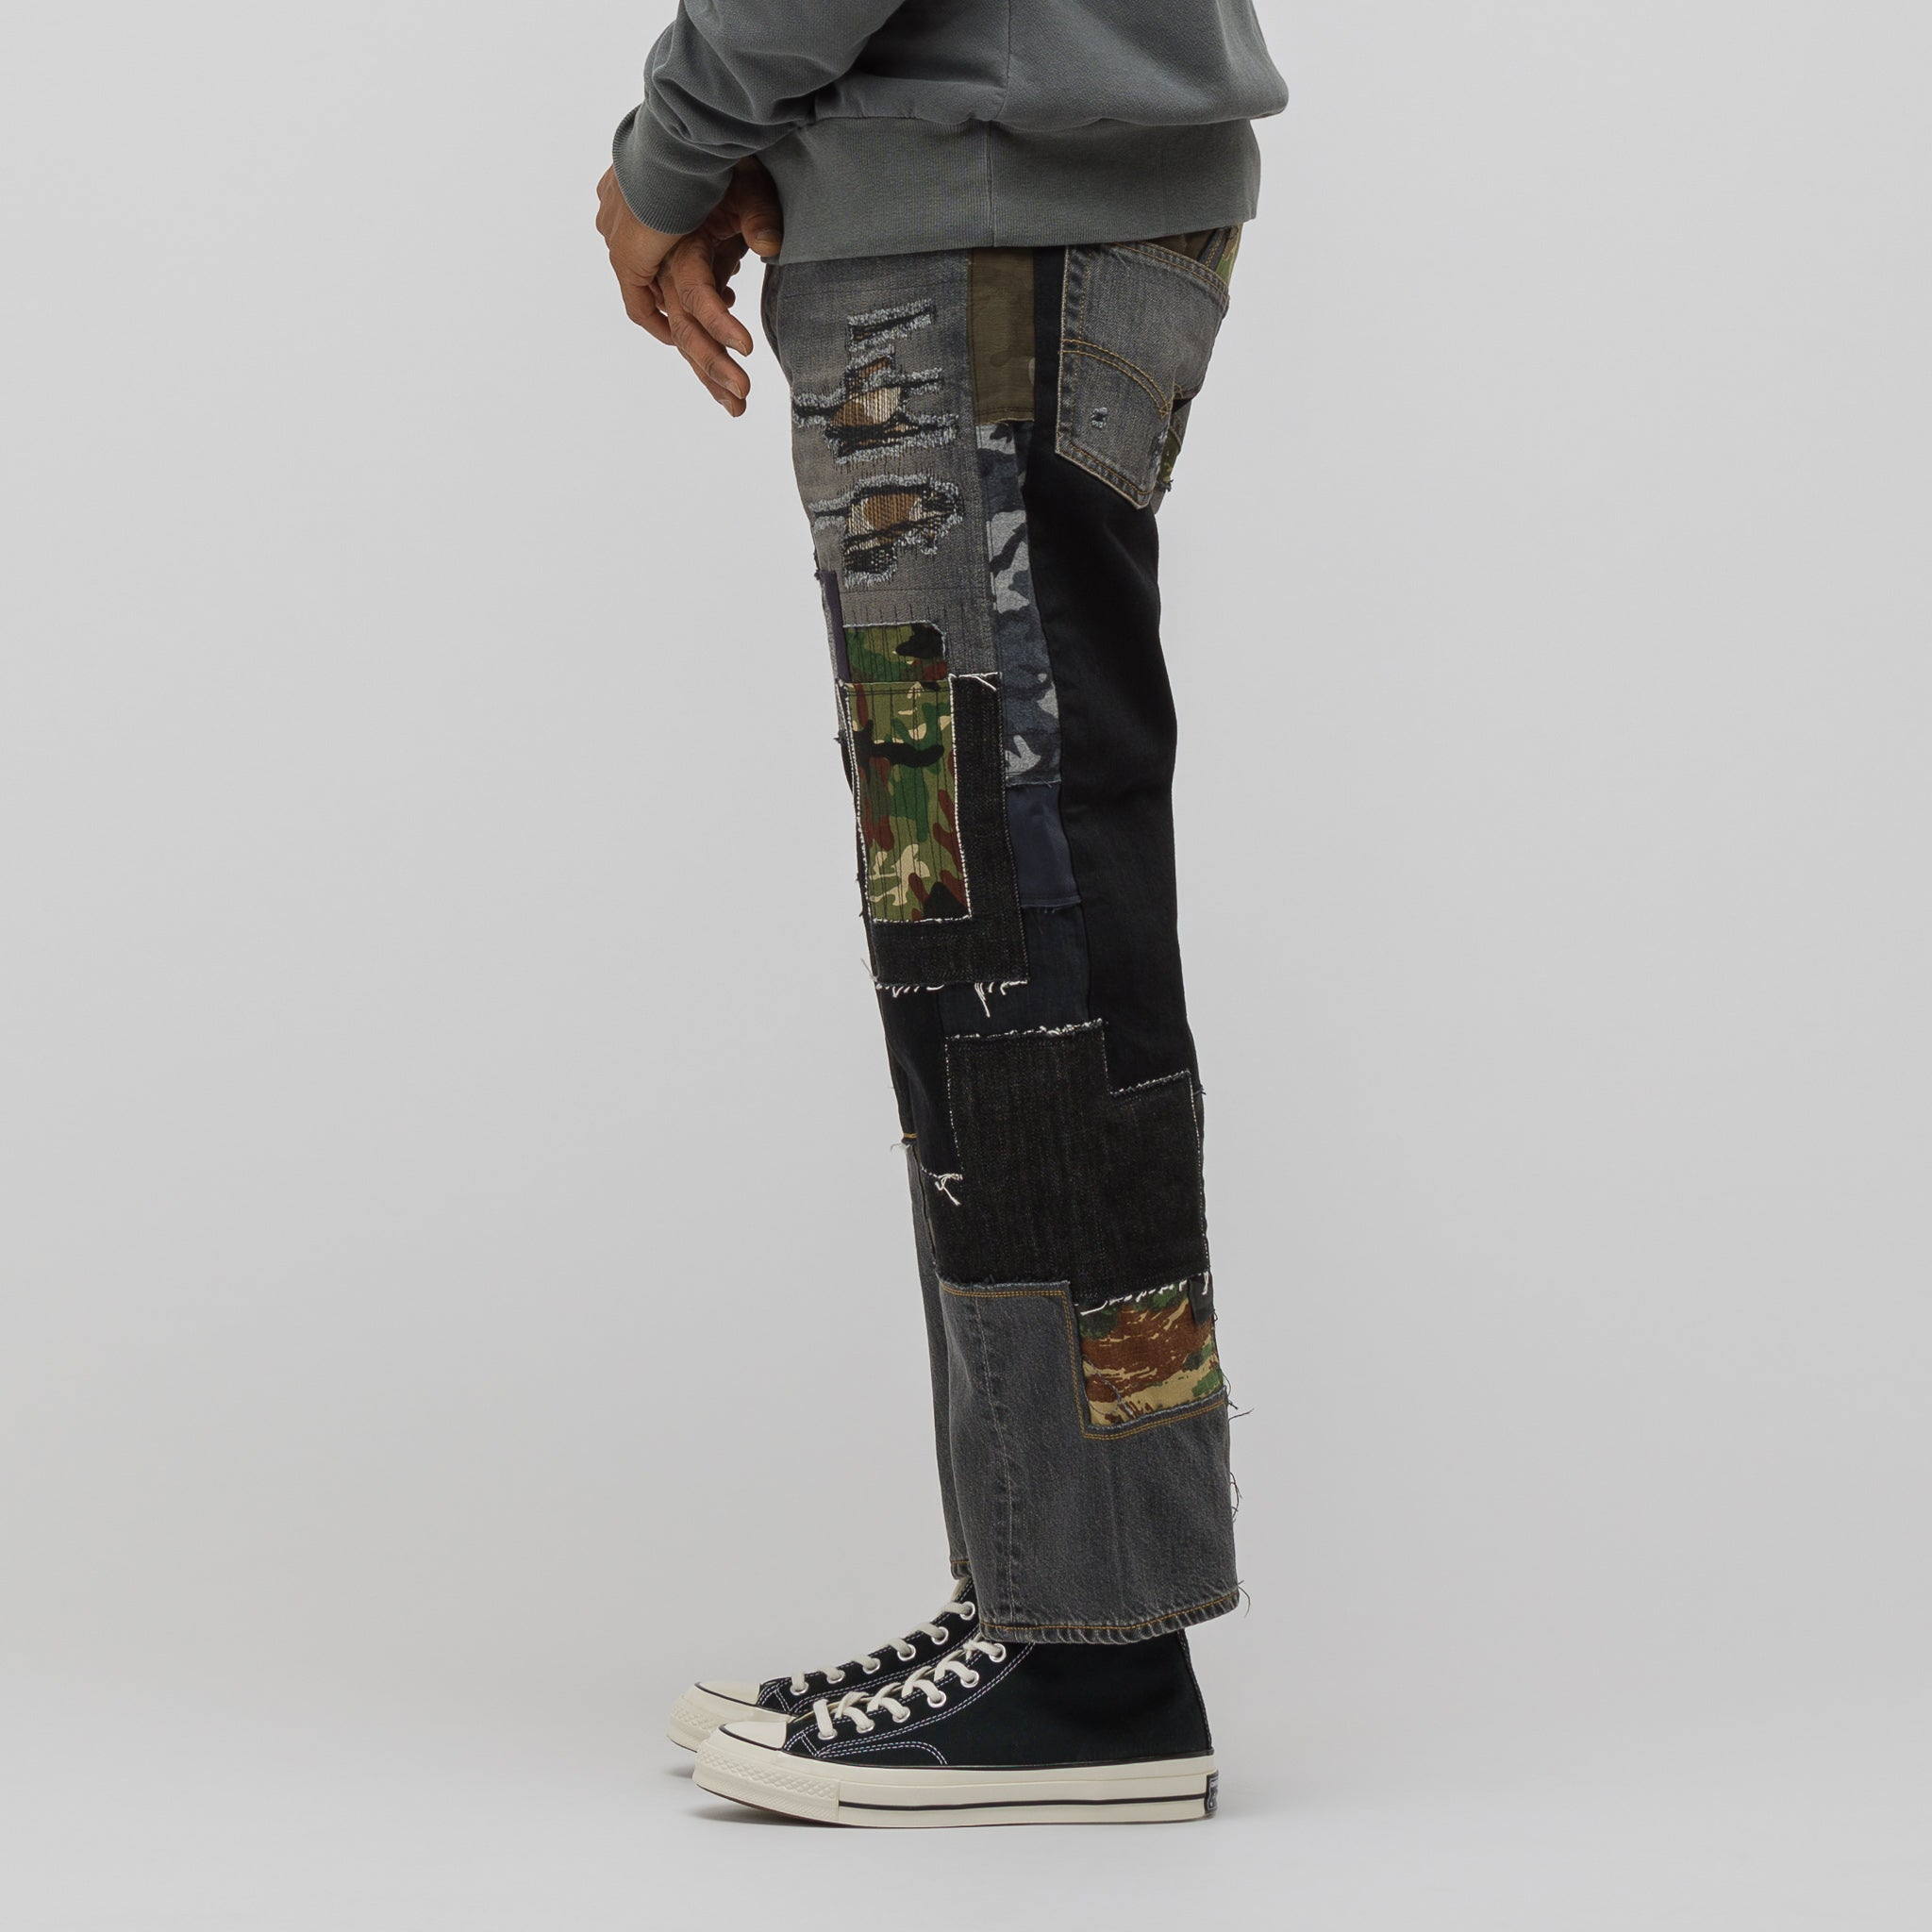 Patchwork Jean in Black/Grey